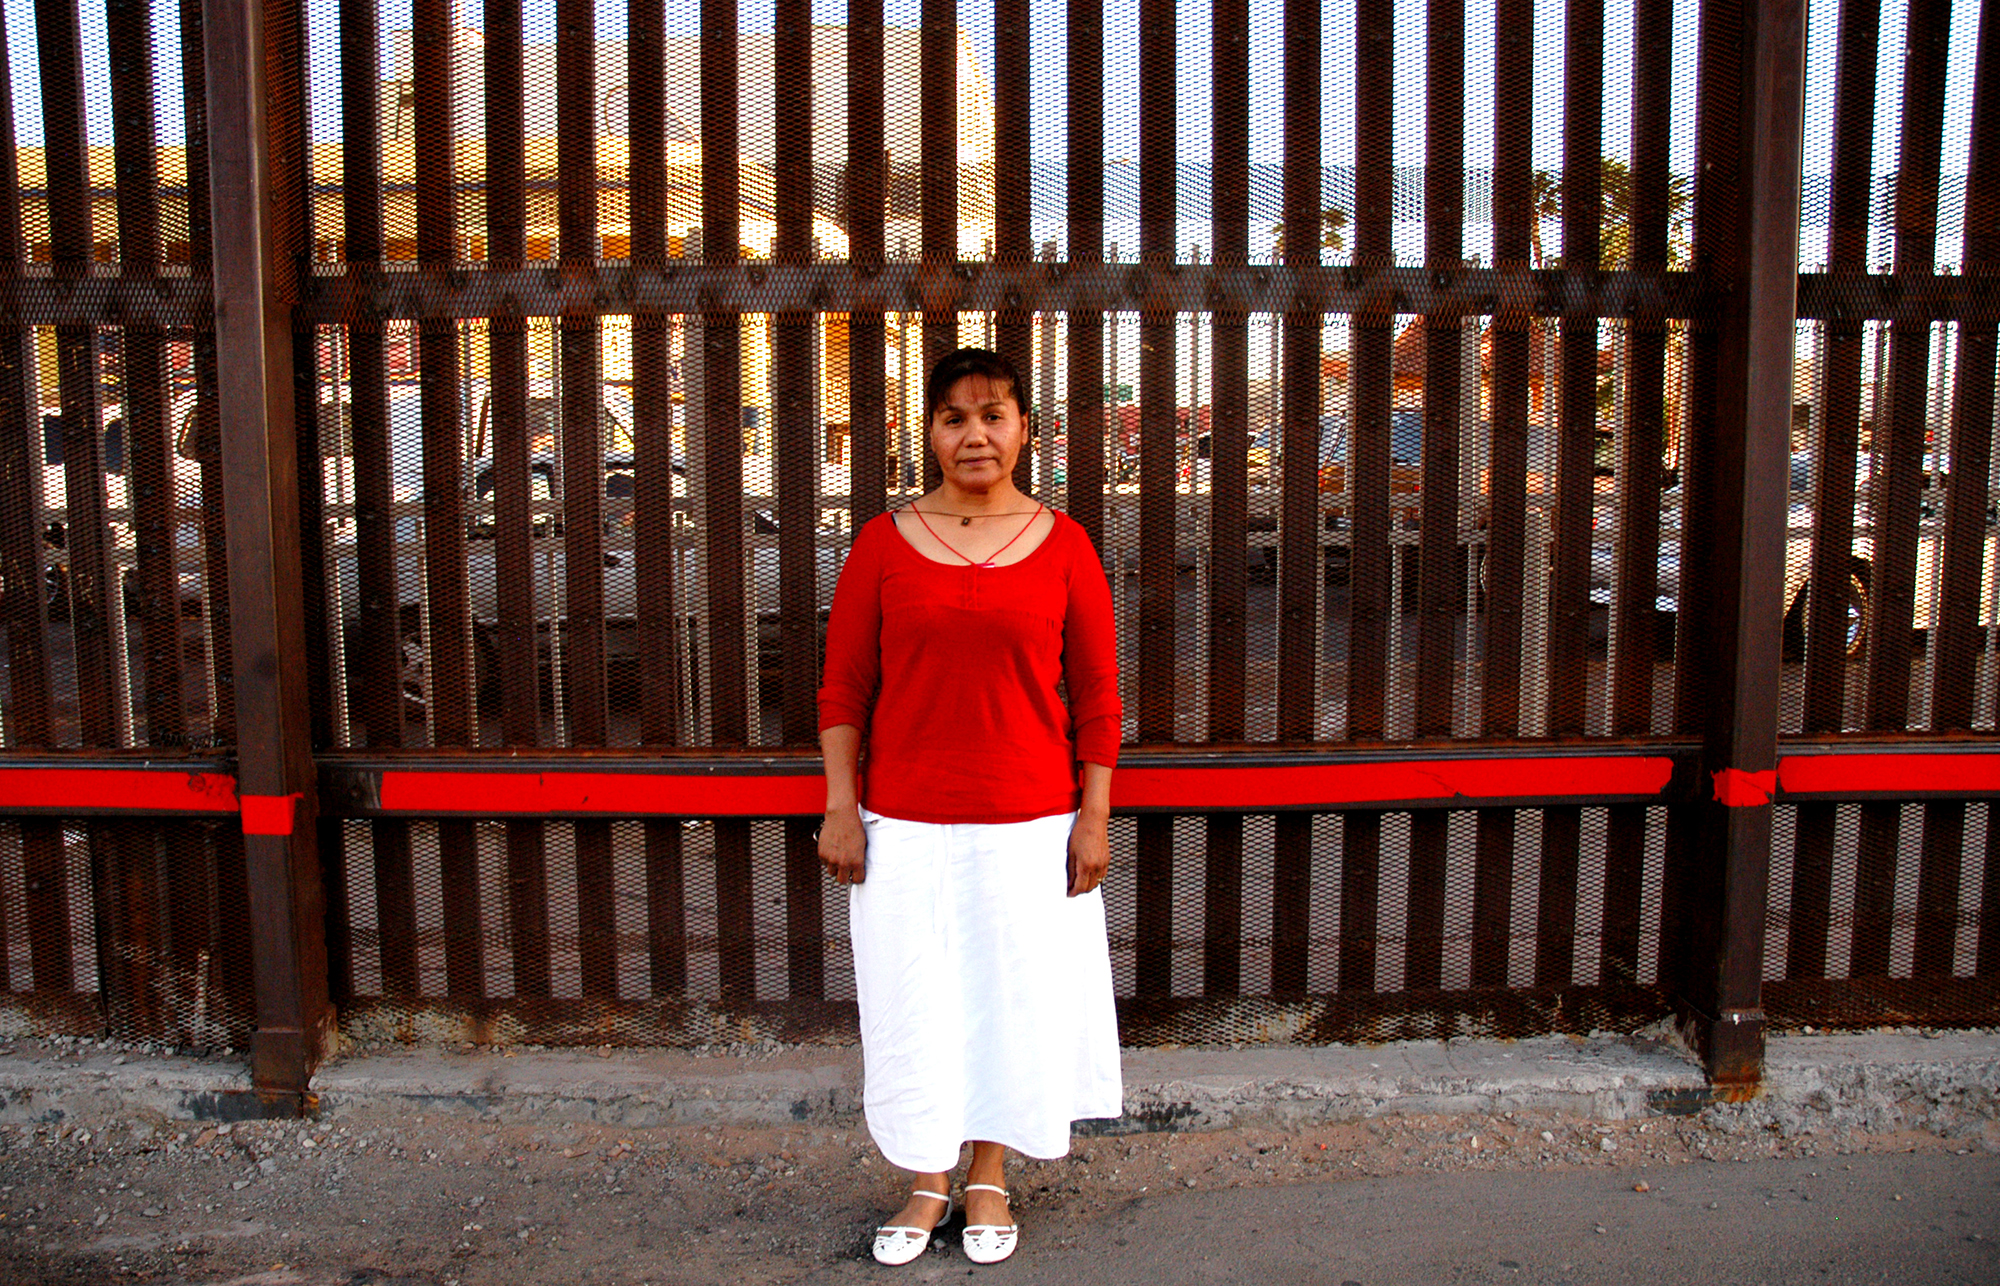 """Alma Valencia, who lives in Calexico, California, but grew up in Mexicali, Mexico, and crosses the border several times a week for church and work. She says """"I like life in Mexico, it's freer, more about community. You go out in the evenings and you see people."""""""